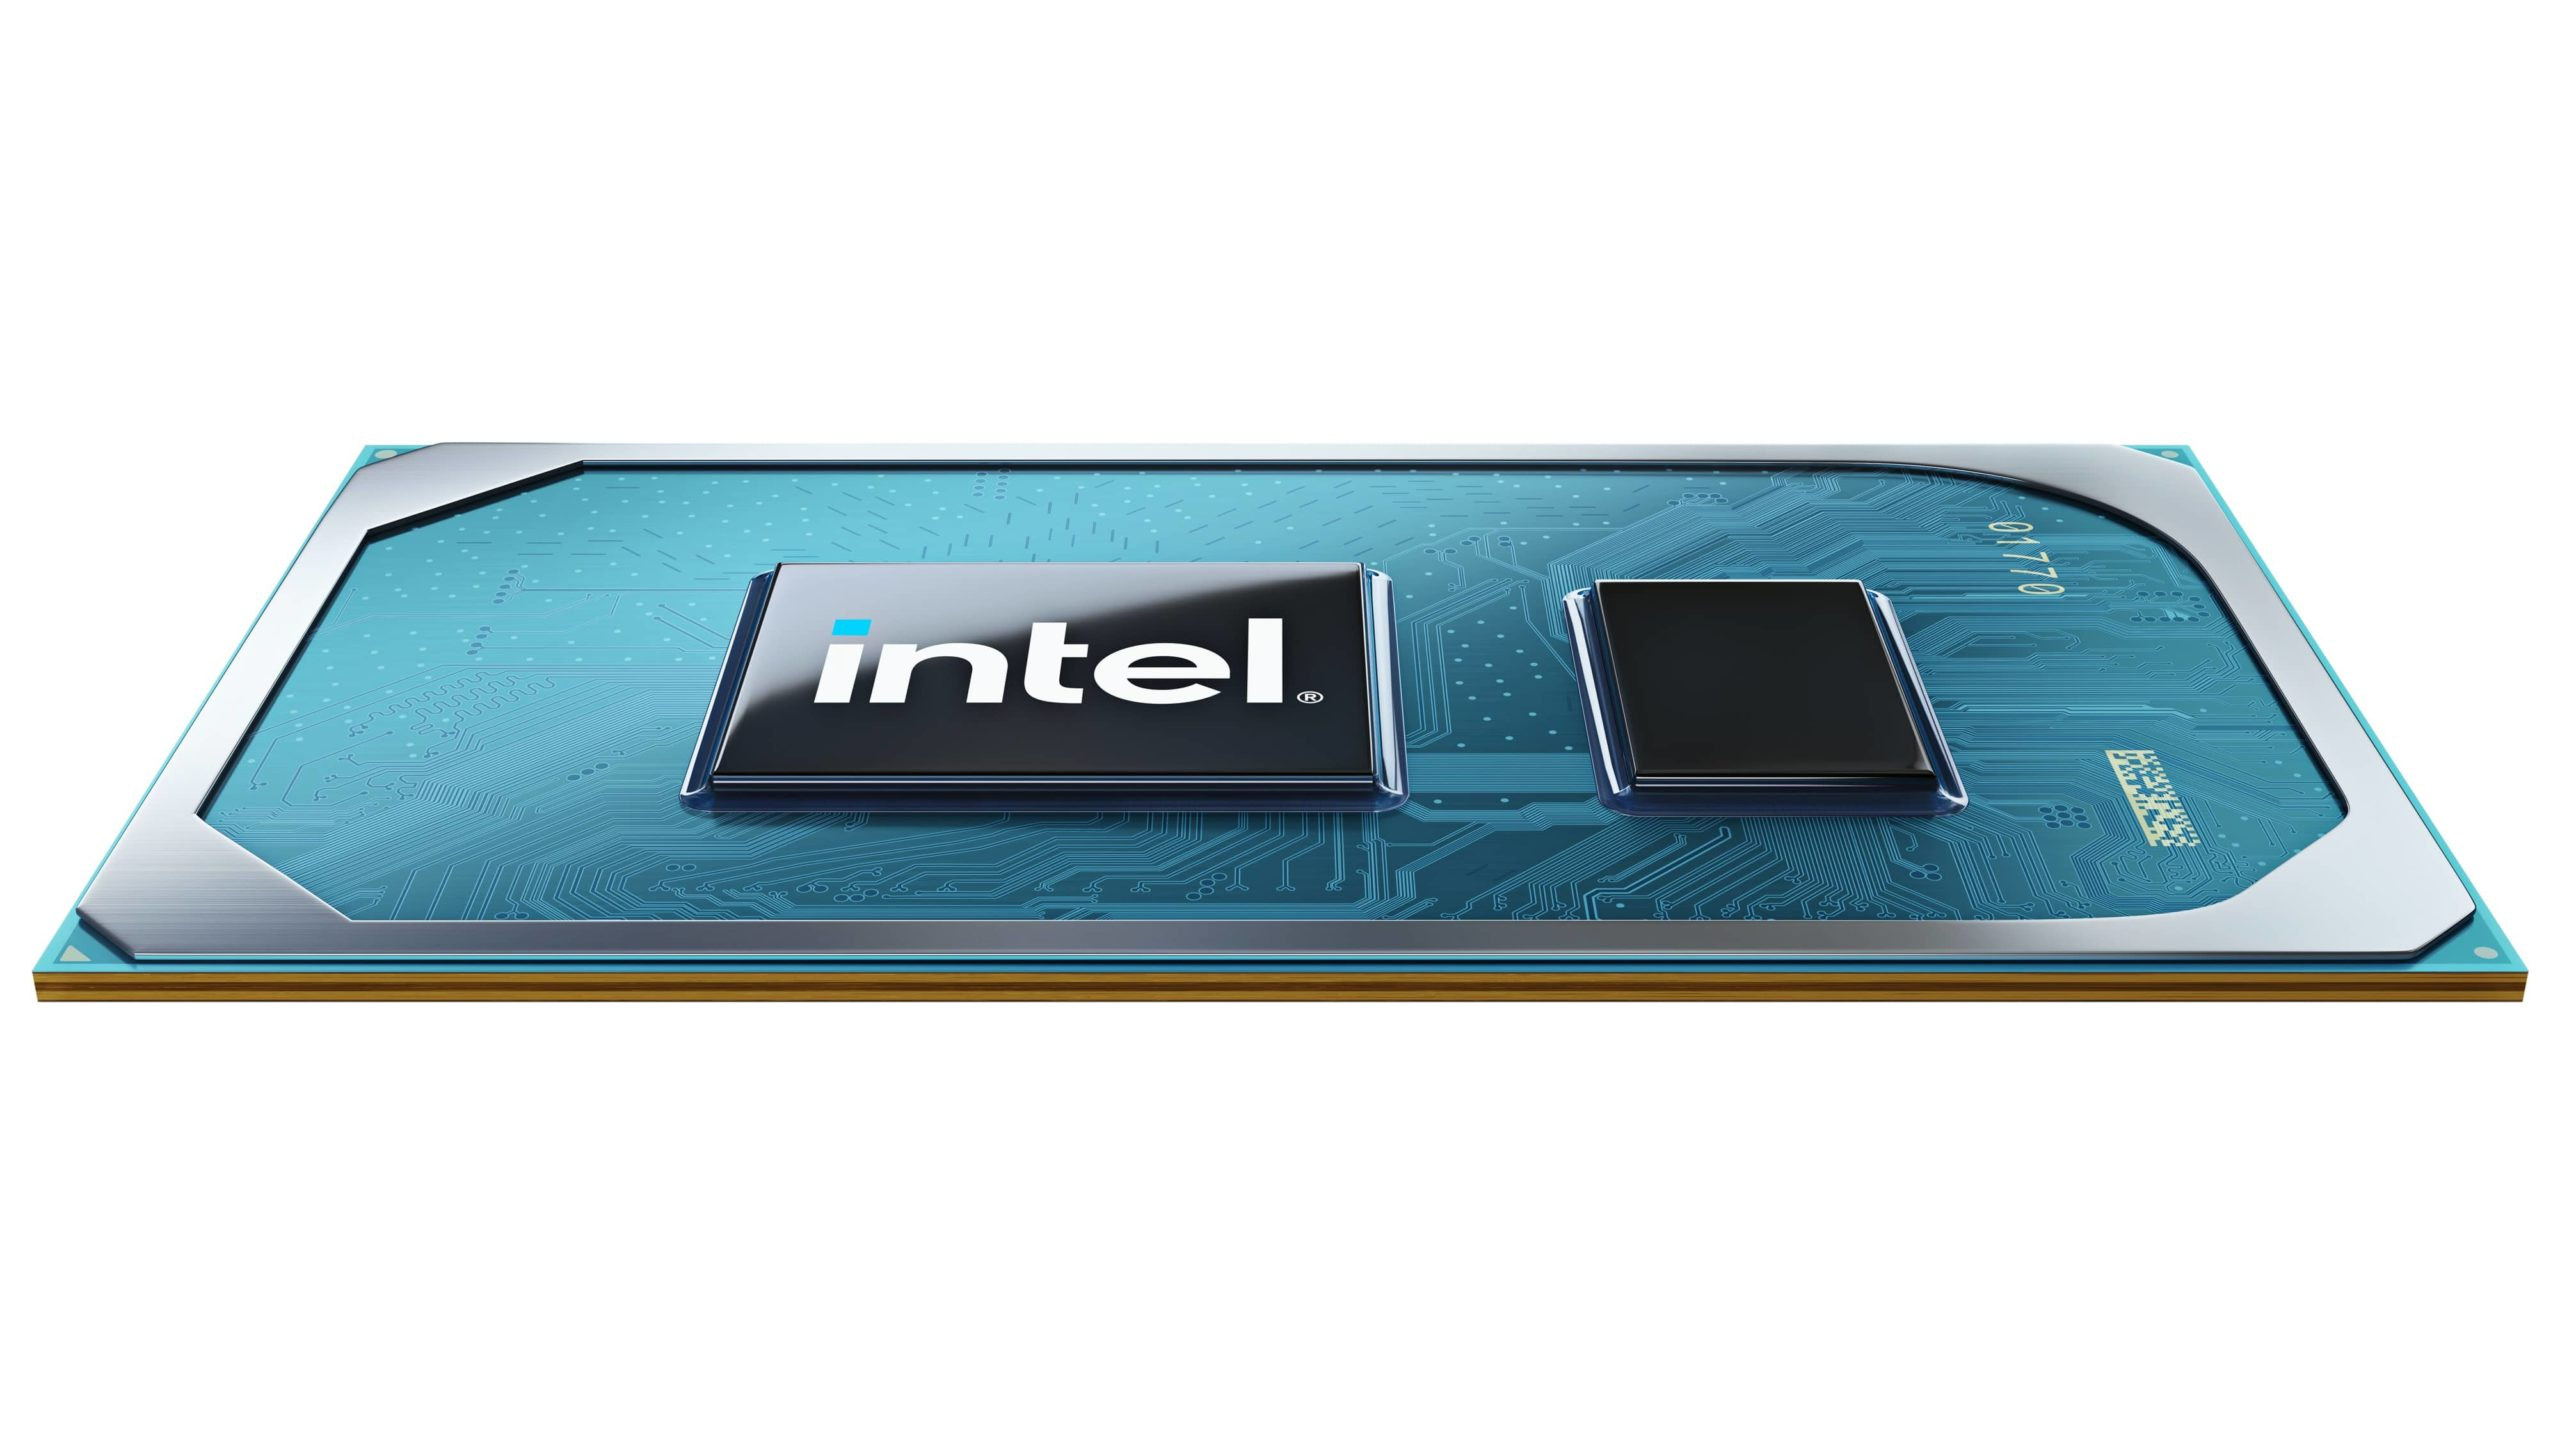 11th Gen Intel Core processors with Intel Iris Xe graphics v2